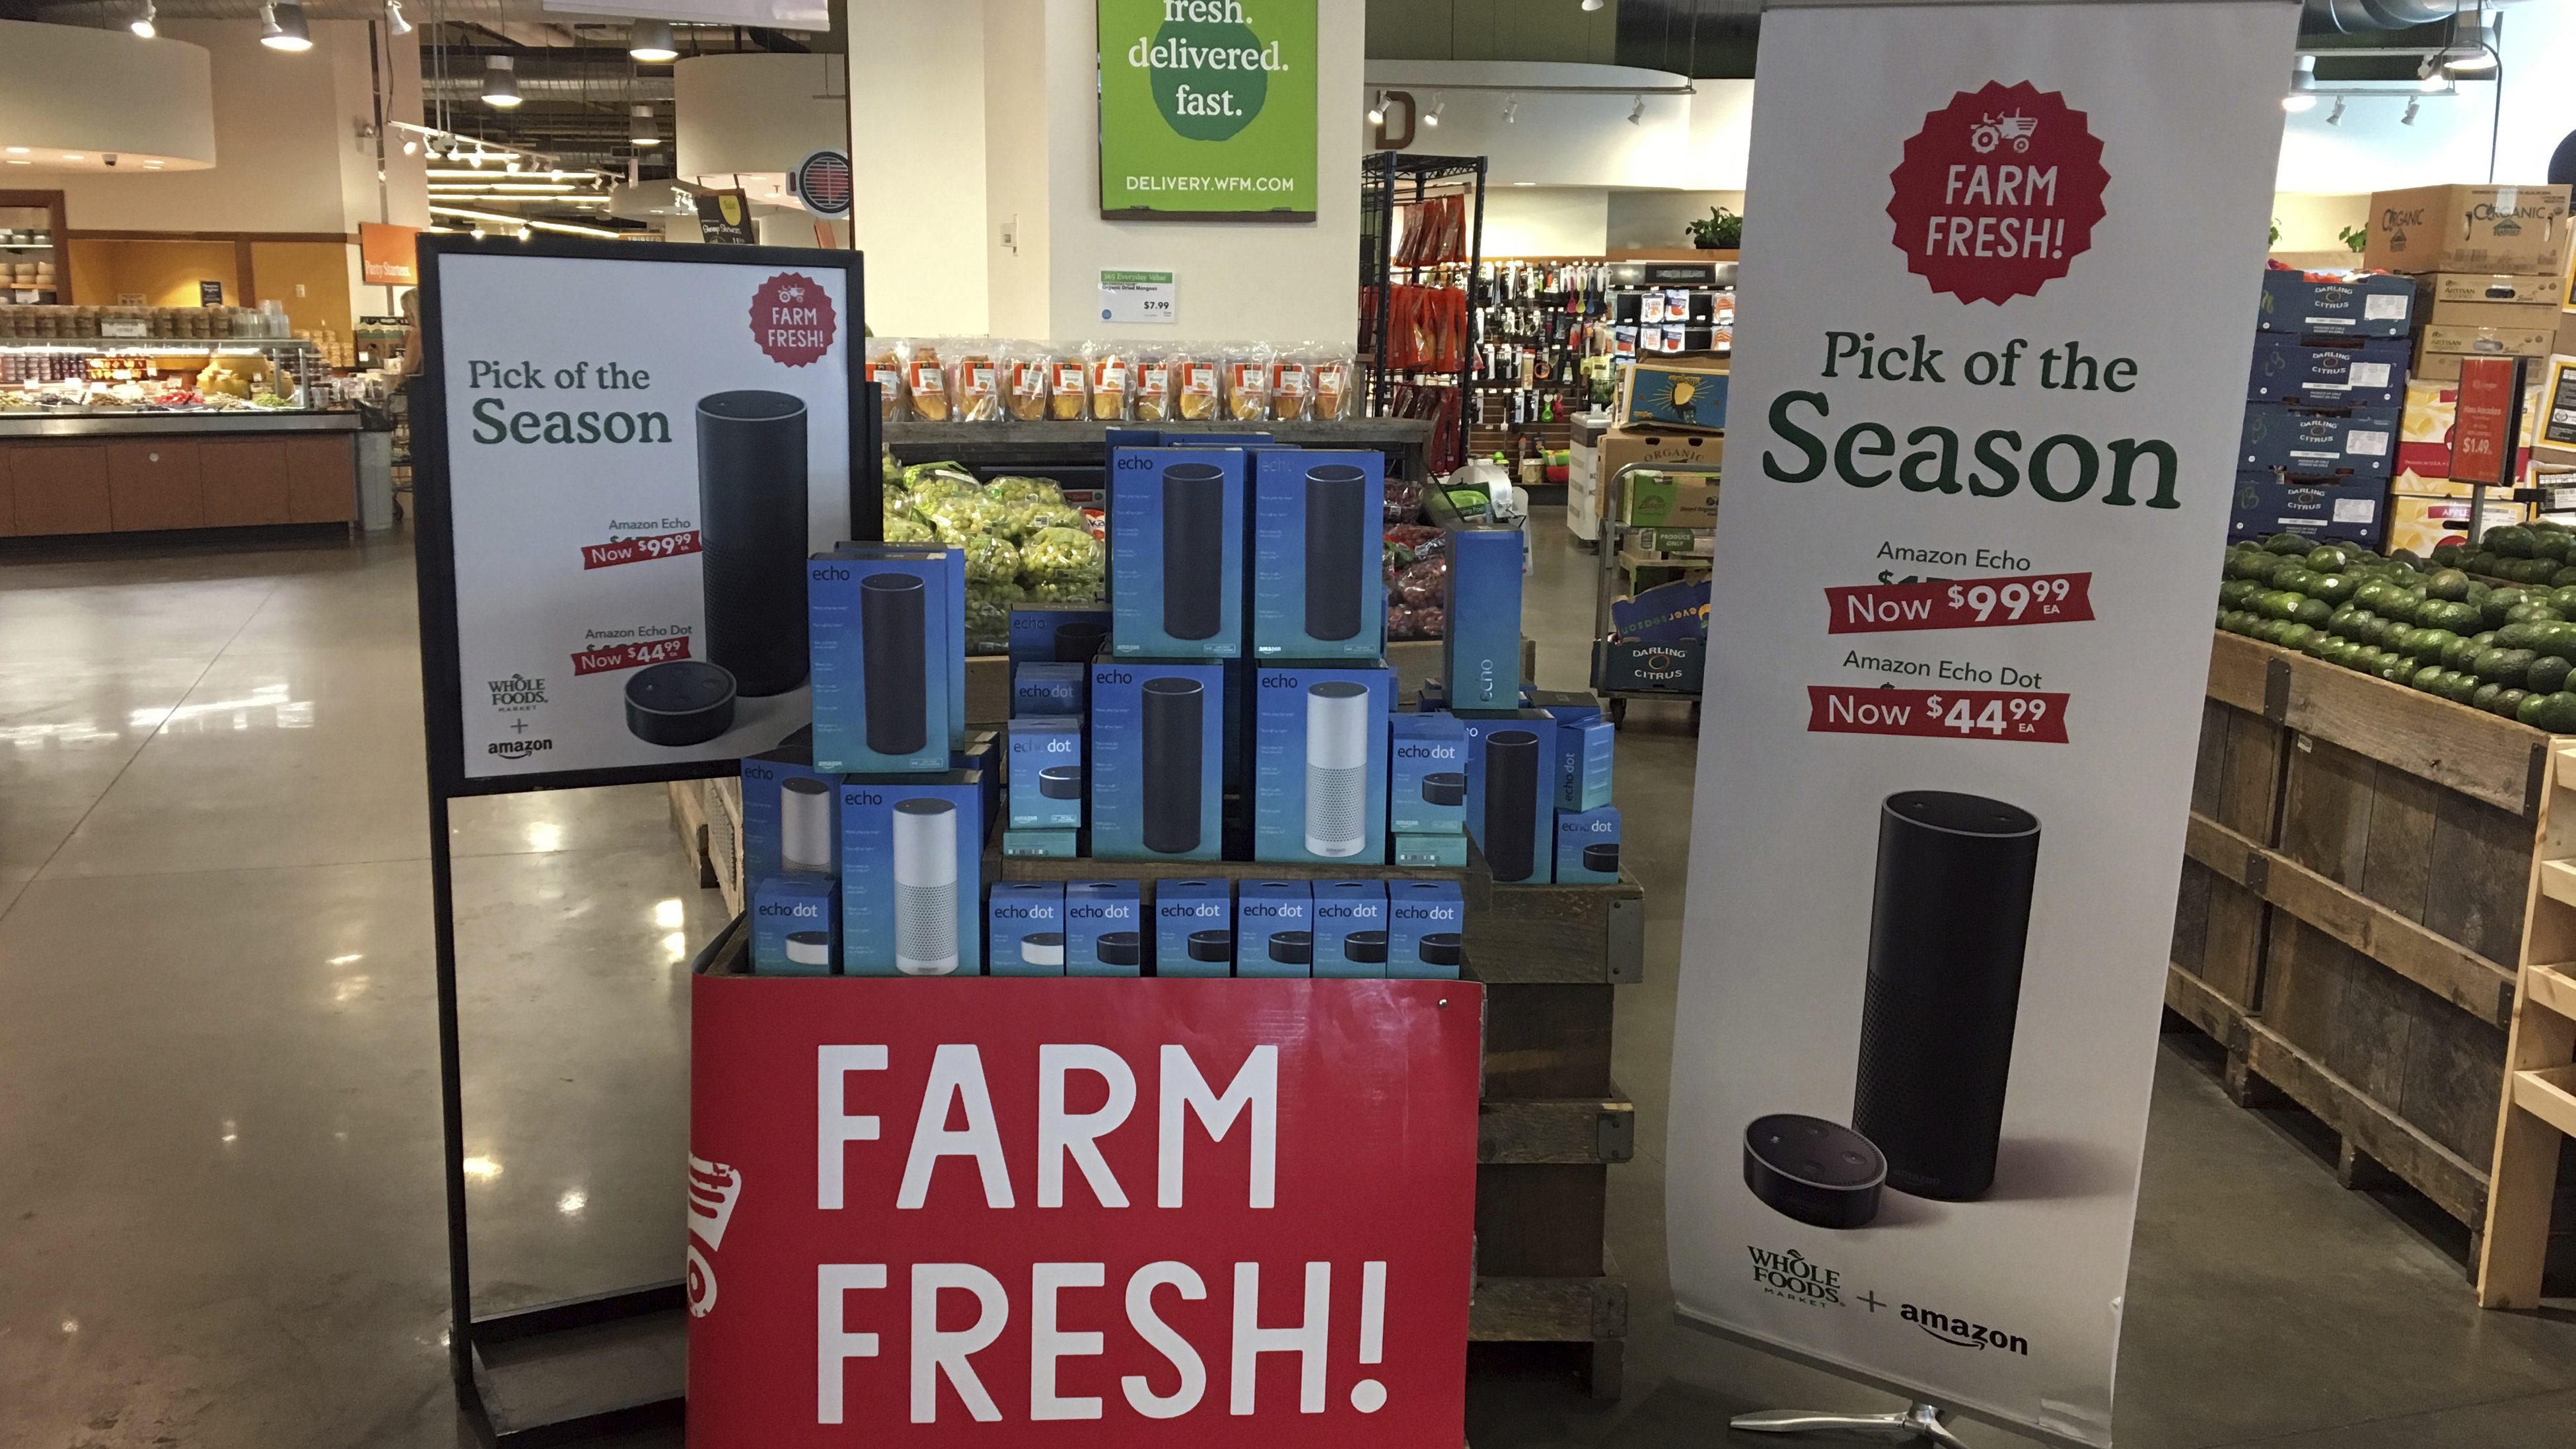 Amazon's Echo and Echo Dot appear on sale at a Whole Foods Market in New York, Monday, Aug. 28, 2017. Amazon has completed its $13.7 billion takeover of organic grocer Whole Foods, and the e-commerce giant is wasting no time putting its stamp on the company. Prices were lowered; Whole Foods brands will soon be on Amazon's site; and Amazon's Prime members could soon get discounts at Whole Foods. The deal could also spur changes in the wider grocery industry. (AP Photo/Joseph Pisani)